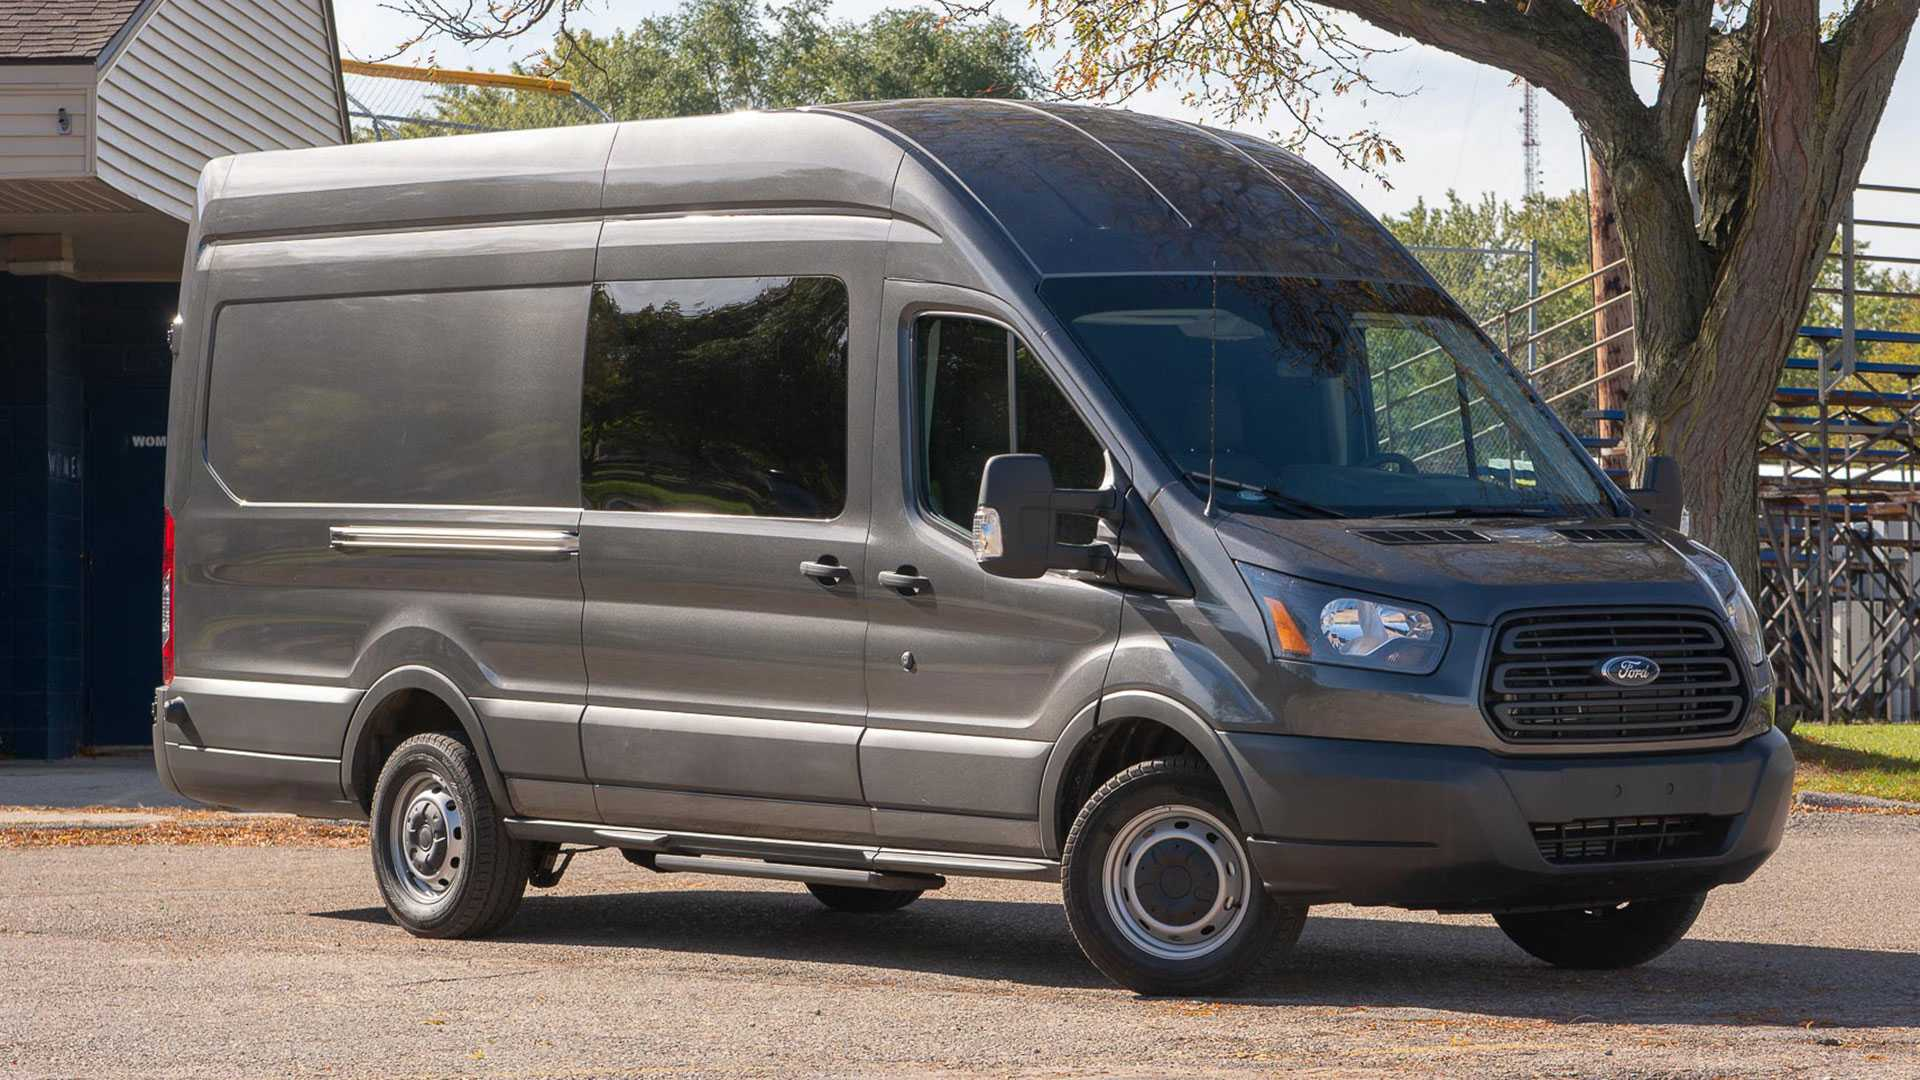 2018 ford transit 250hr cargo van review a big fat focus 2018 ford transit 250hr cargo van